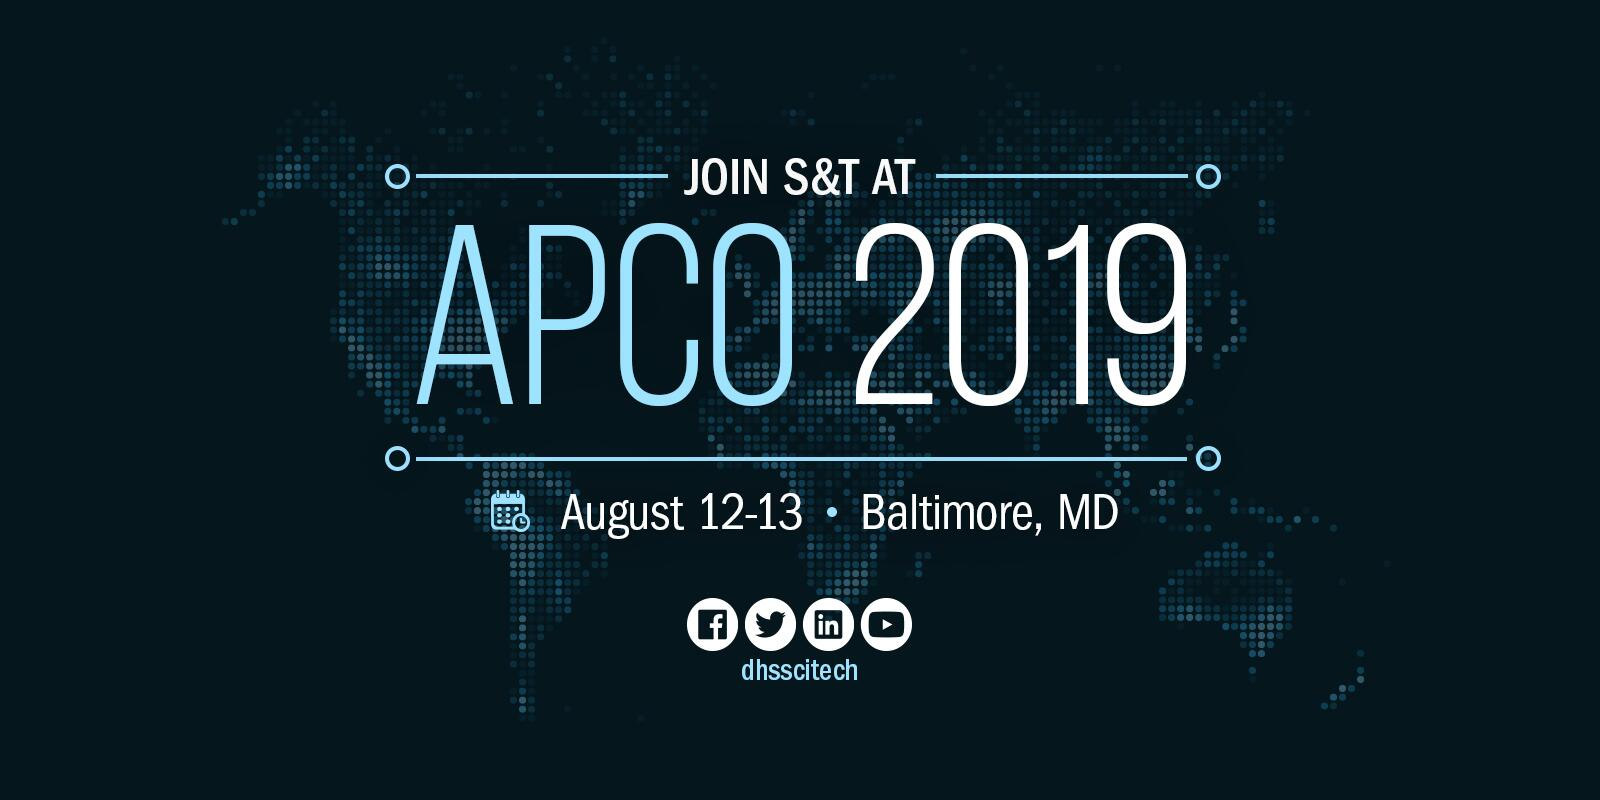 Join S&T at APCO 2019. August 12-13. Baltimore, Md. Facebook. Twitter. LinkedIn. YouTube. DHSScitTech.